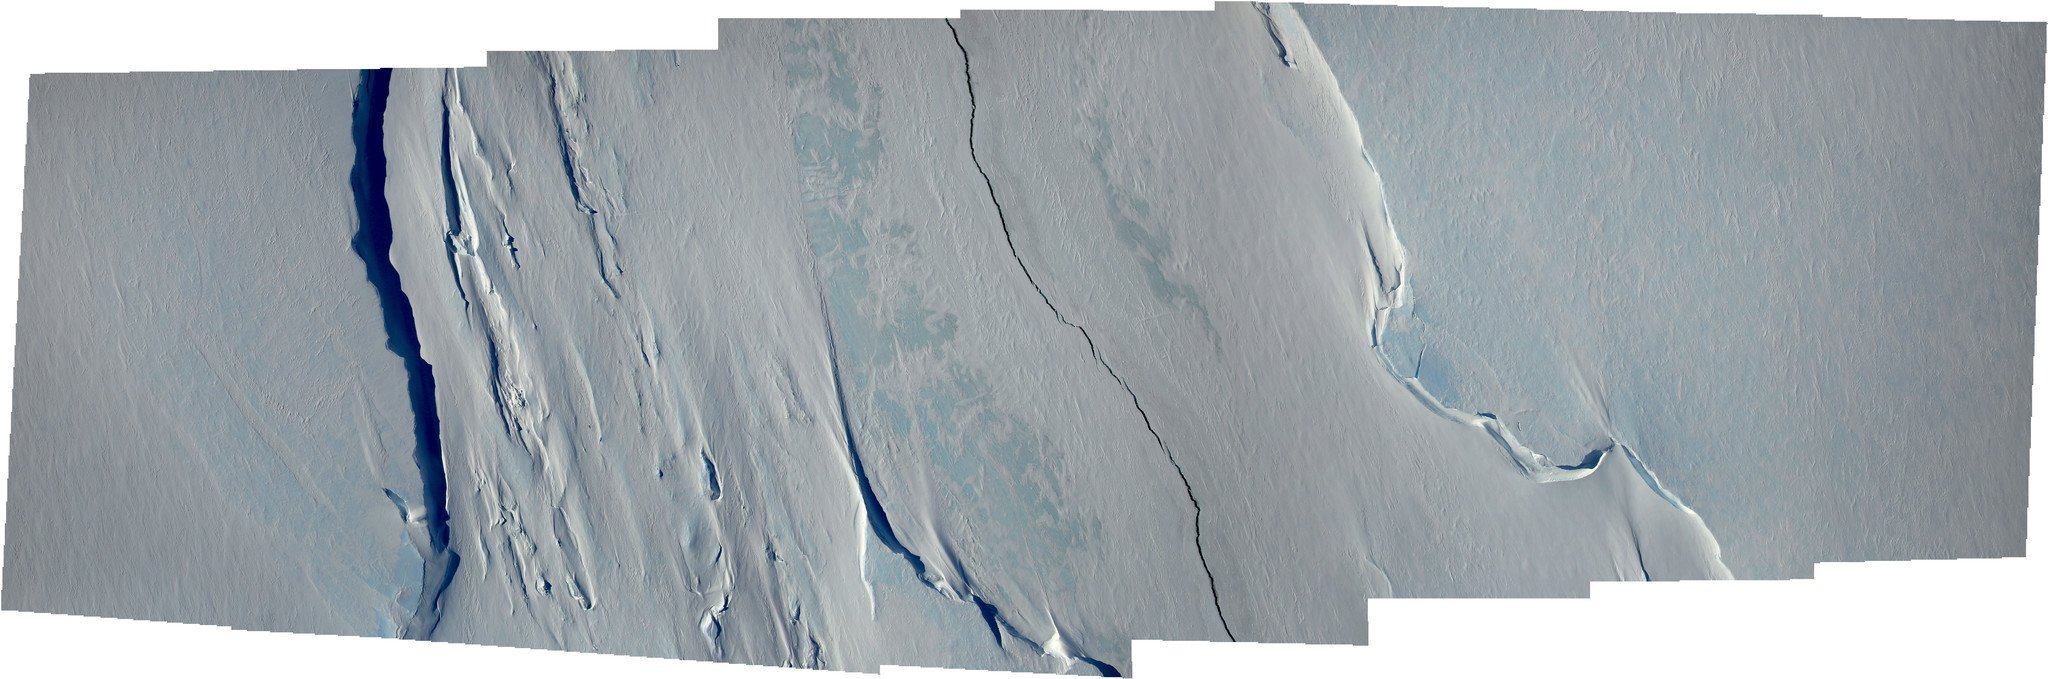 A composite of multiple images show a wider part of the rift in the Larsen C on Nov. 10, 2016.